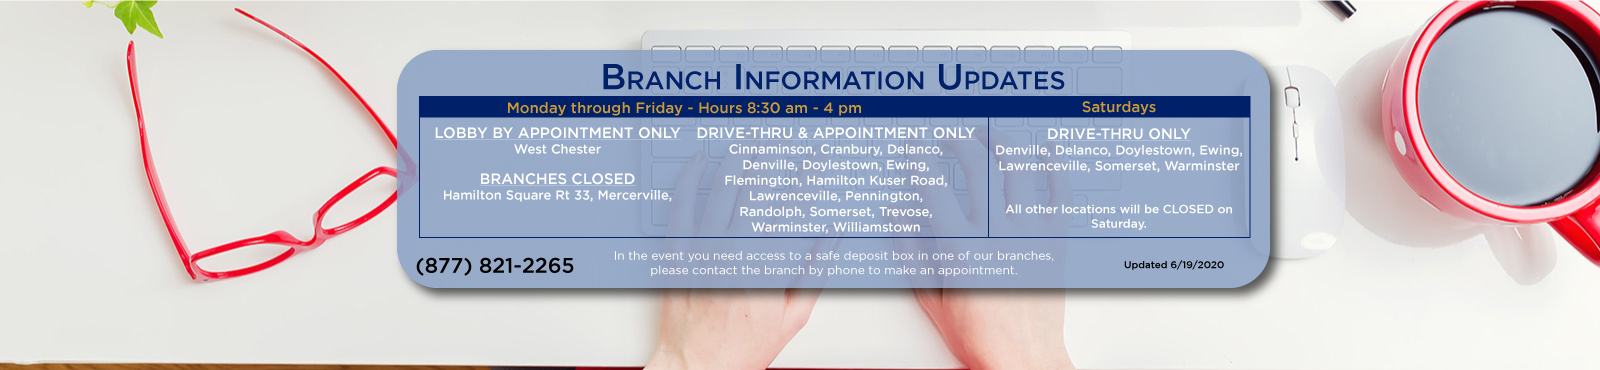 COVID-19 branch information update